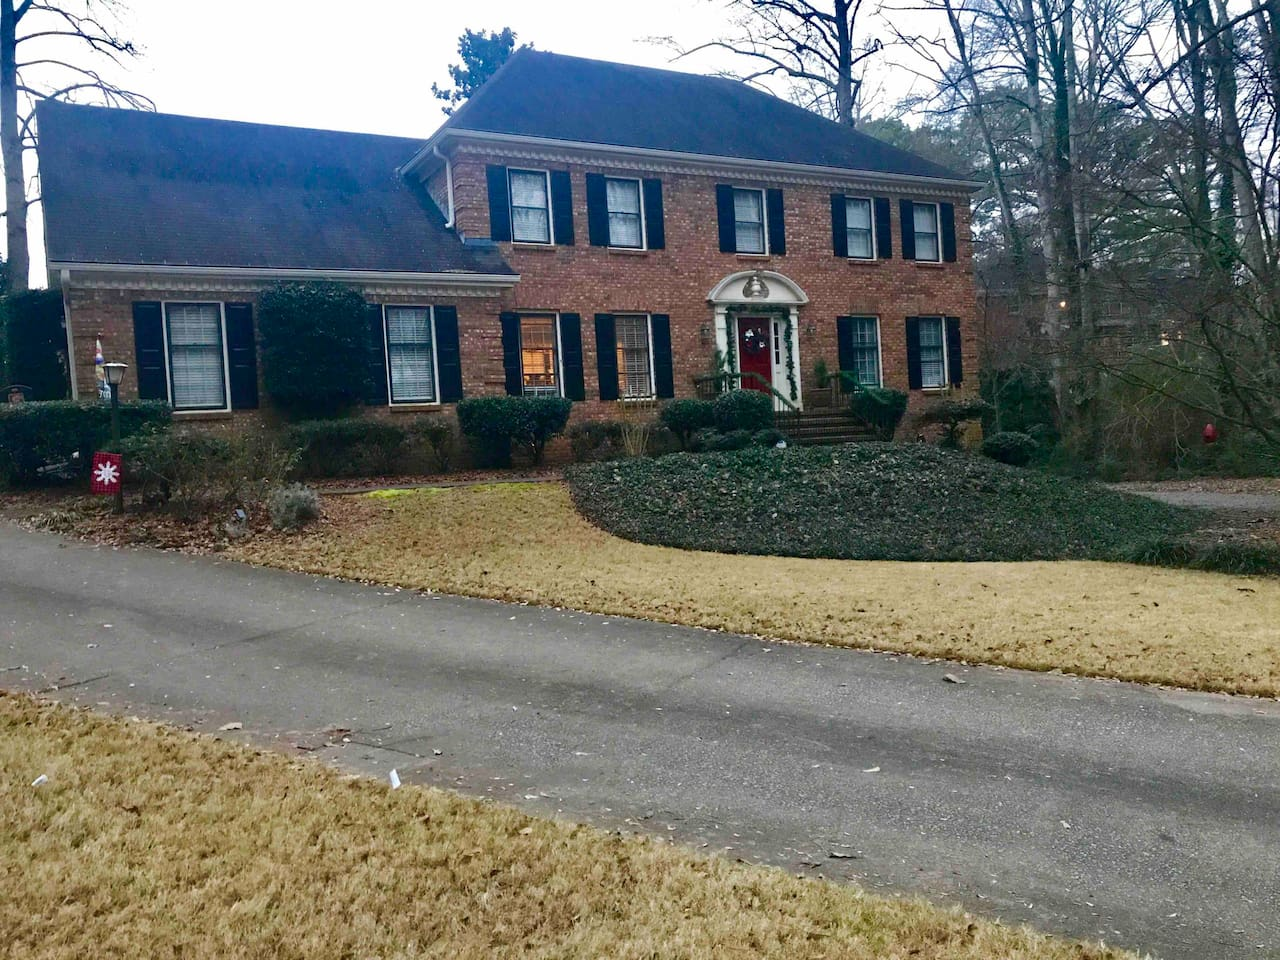 Located on a quiet culdesac, there is plenty of room for parking.  There is an additional side driveway for additional parking.